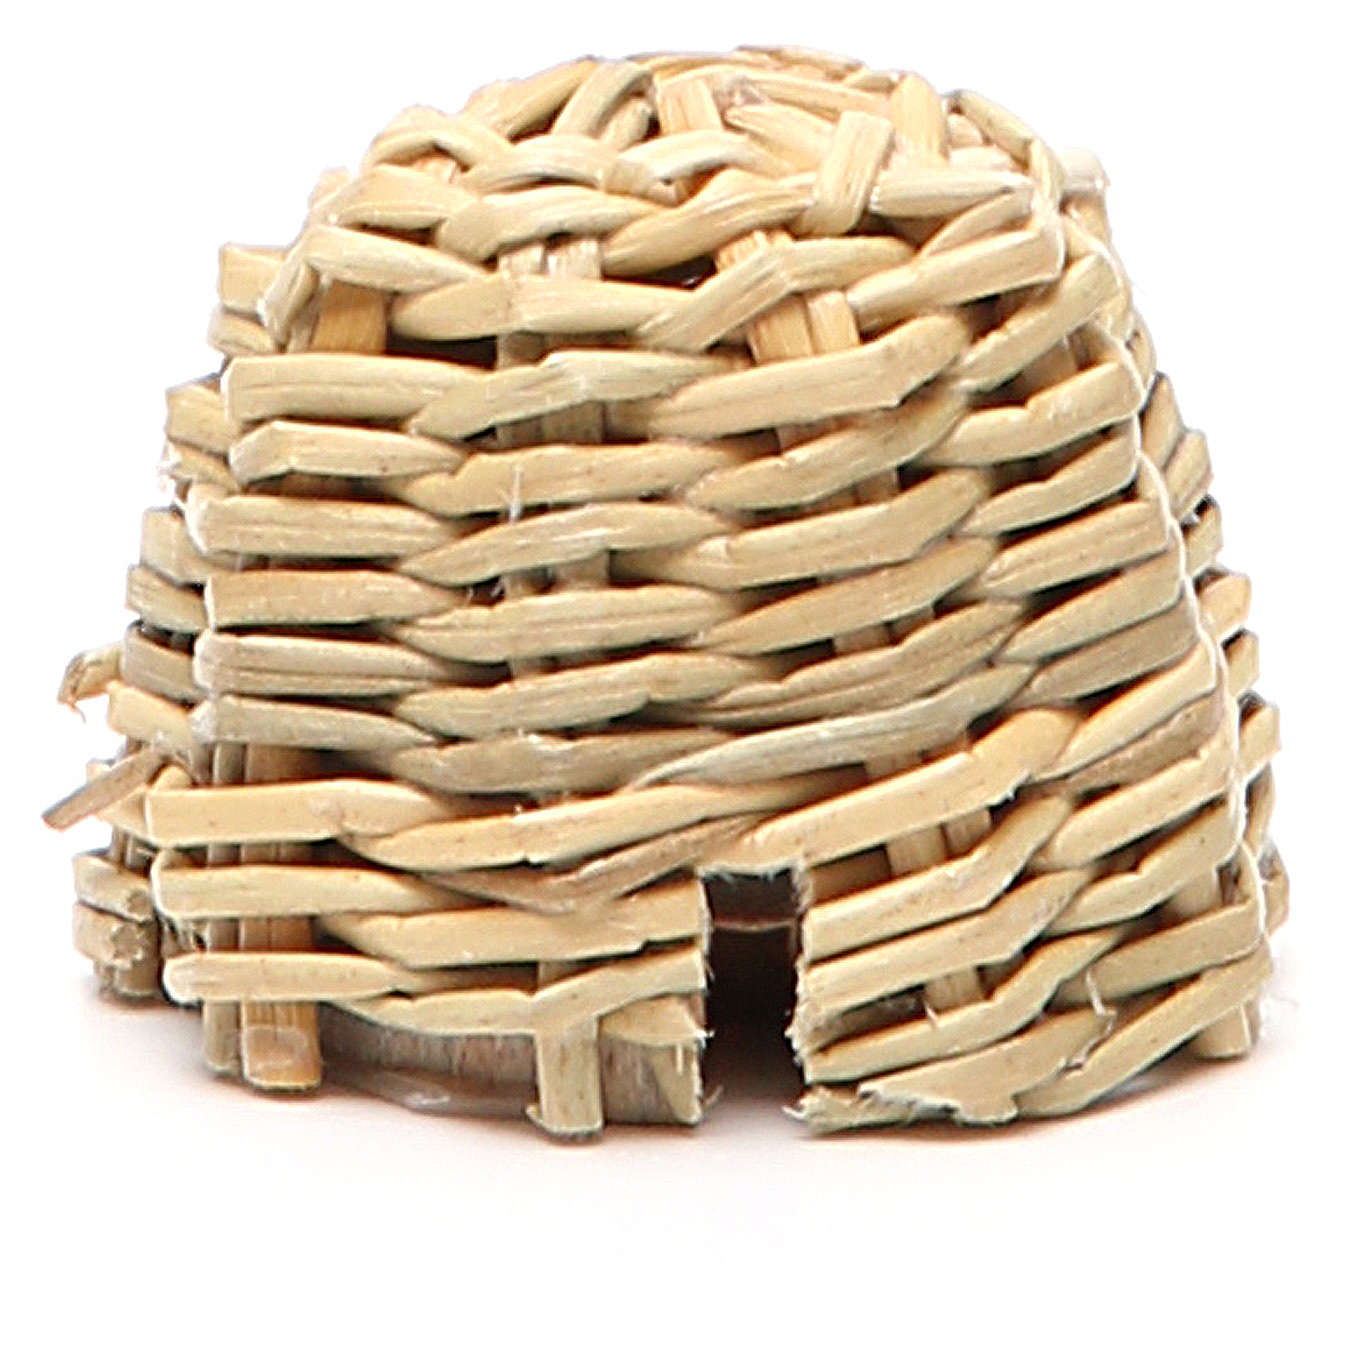 Beehive in wood and wicker for nativity h. 3,5cm 4